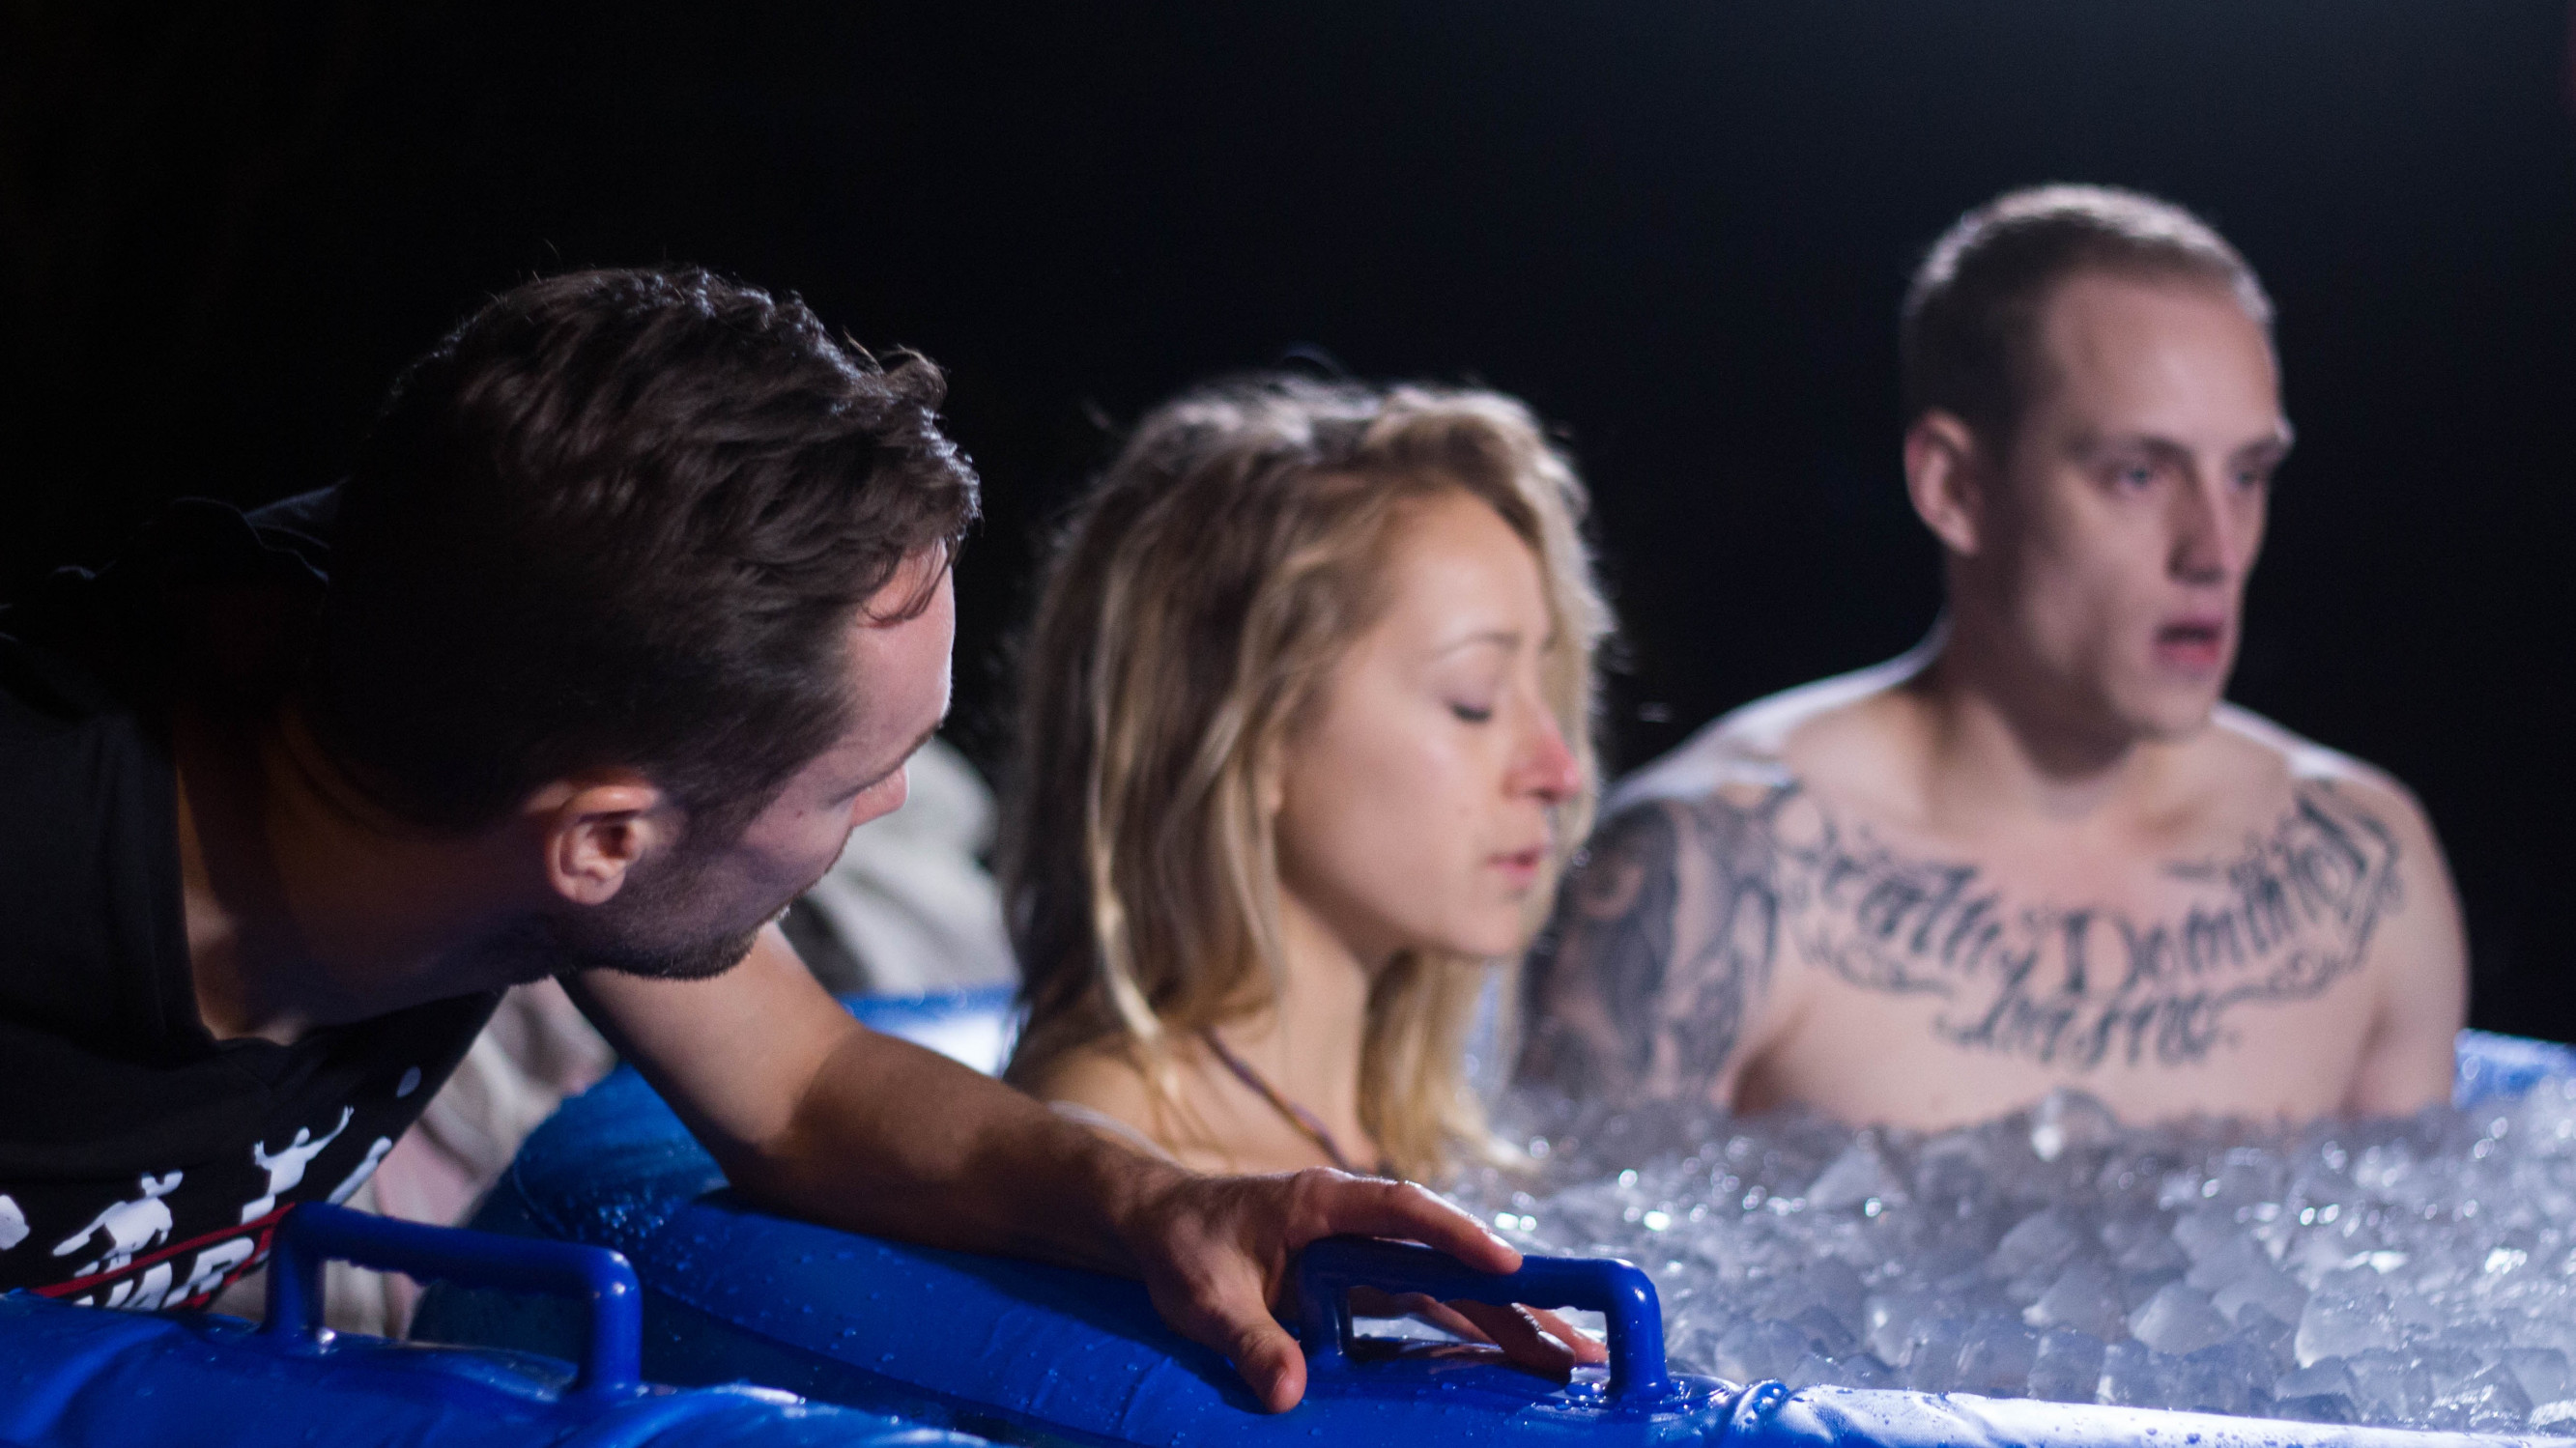 Image 24 of 27 - Experience the Wim Hof Method to get an impression of  at